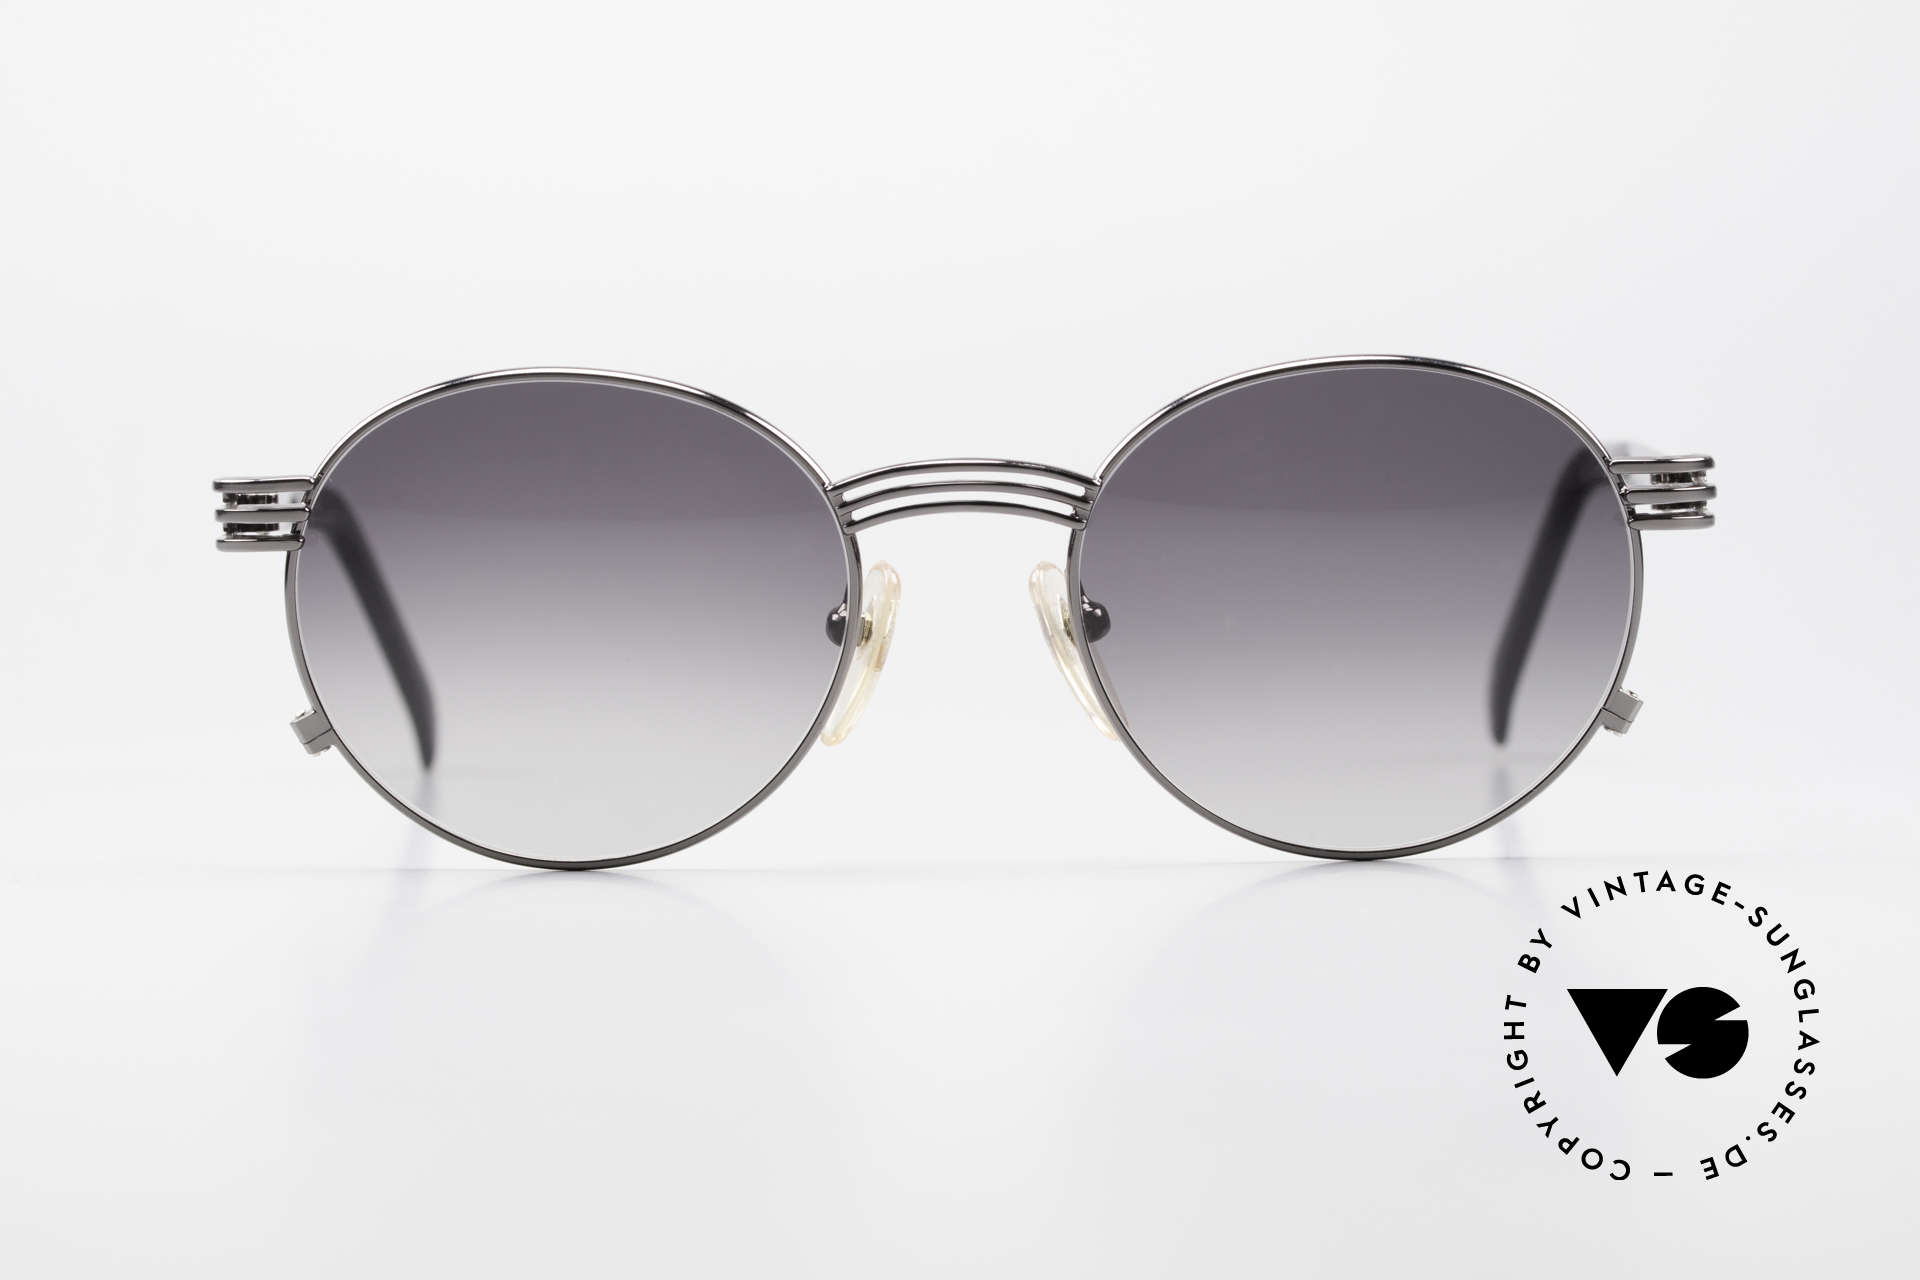 Jean Paul Gaultier 55-3174 Designer Vintage 90's Glasses, the temples are shaped like a fork (typically unique JPG), Made for Men and Women